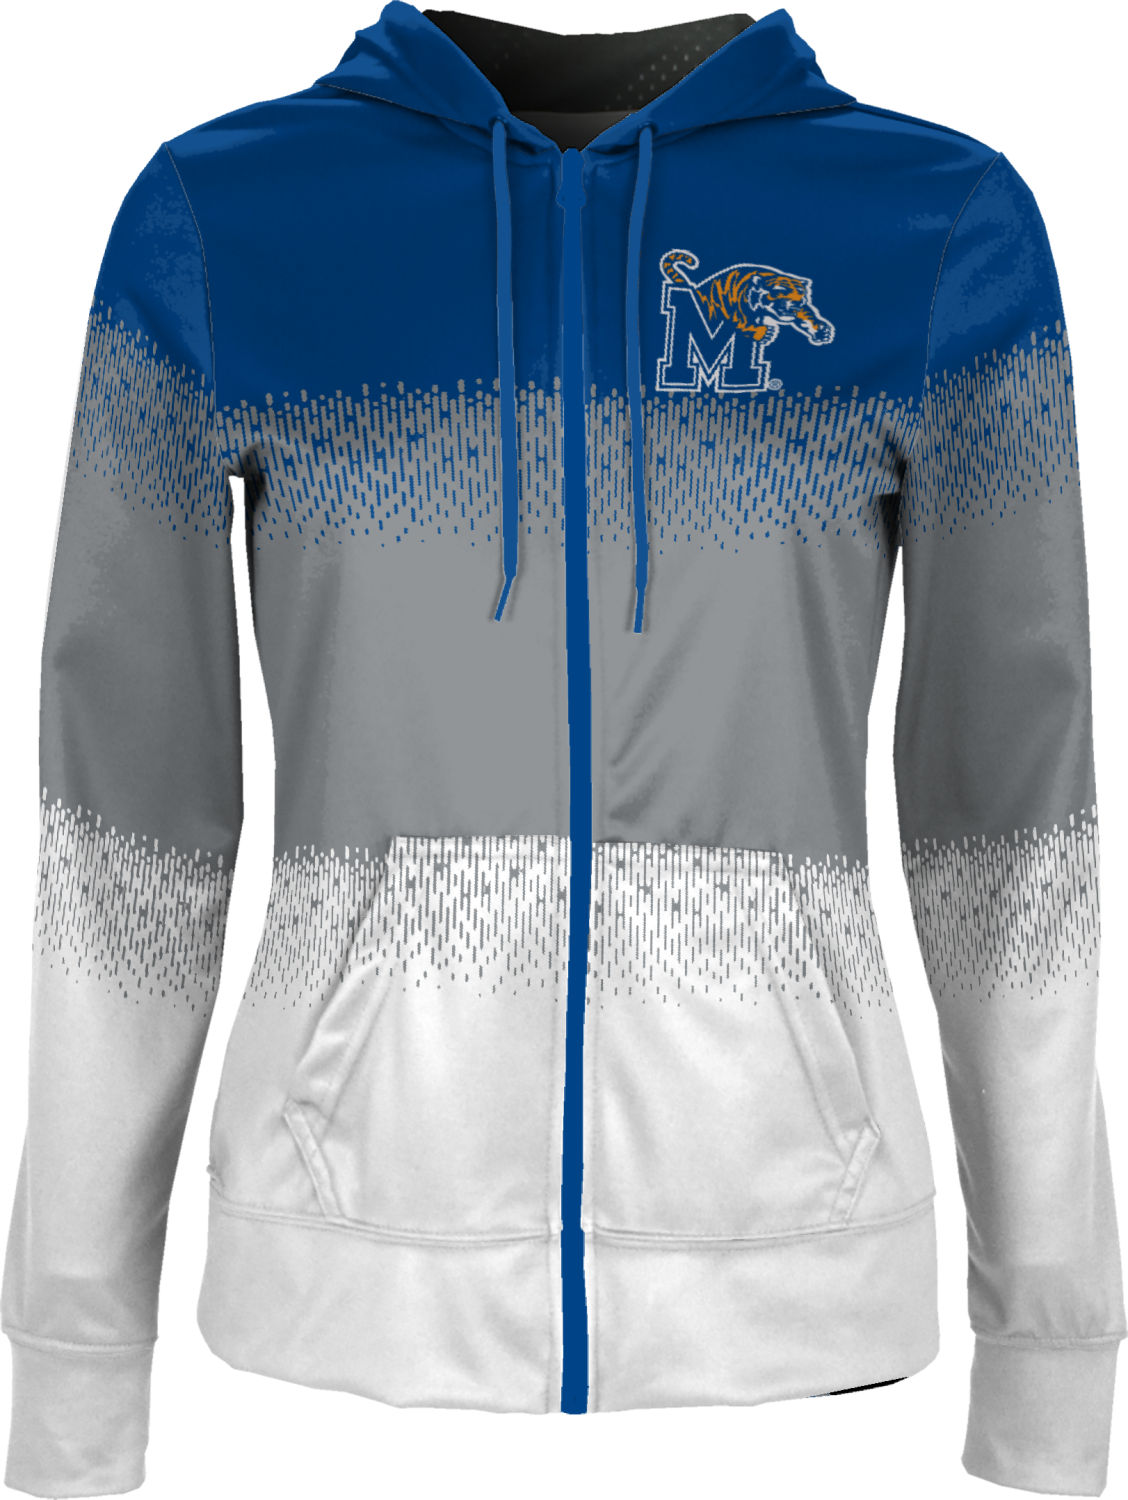 Ripple ProSphere University of Memphis Boys Full Zip Hoodie